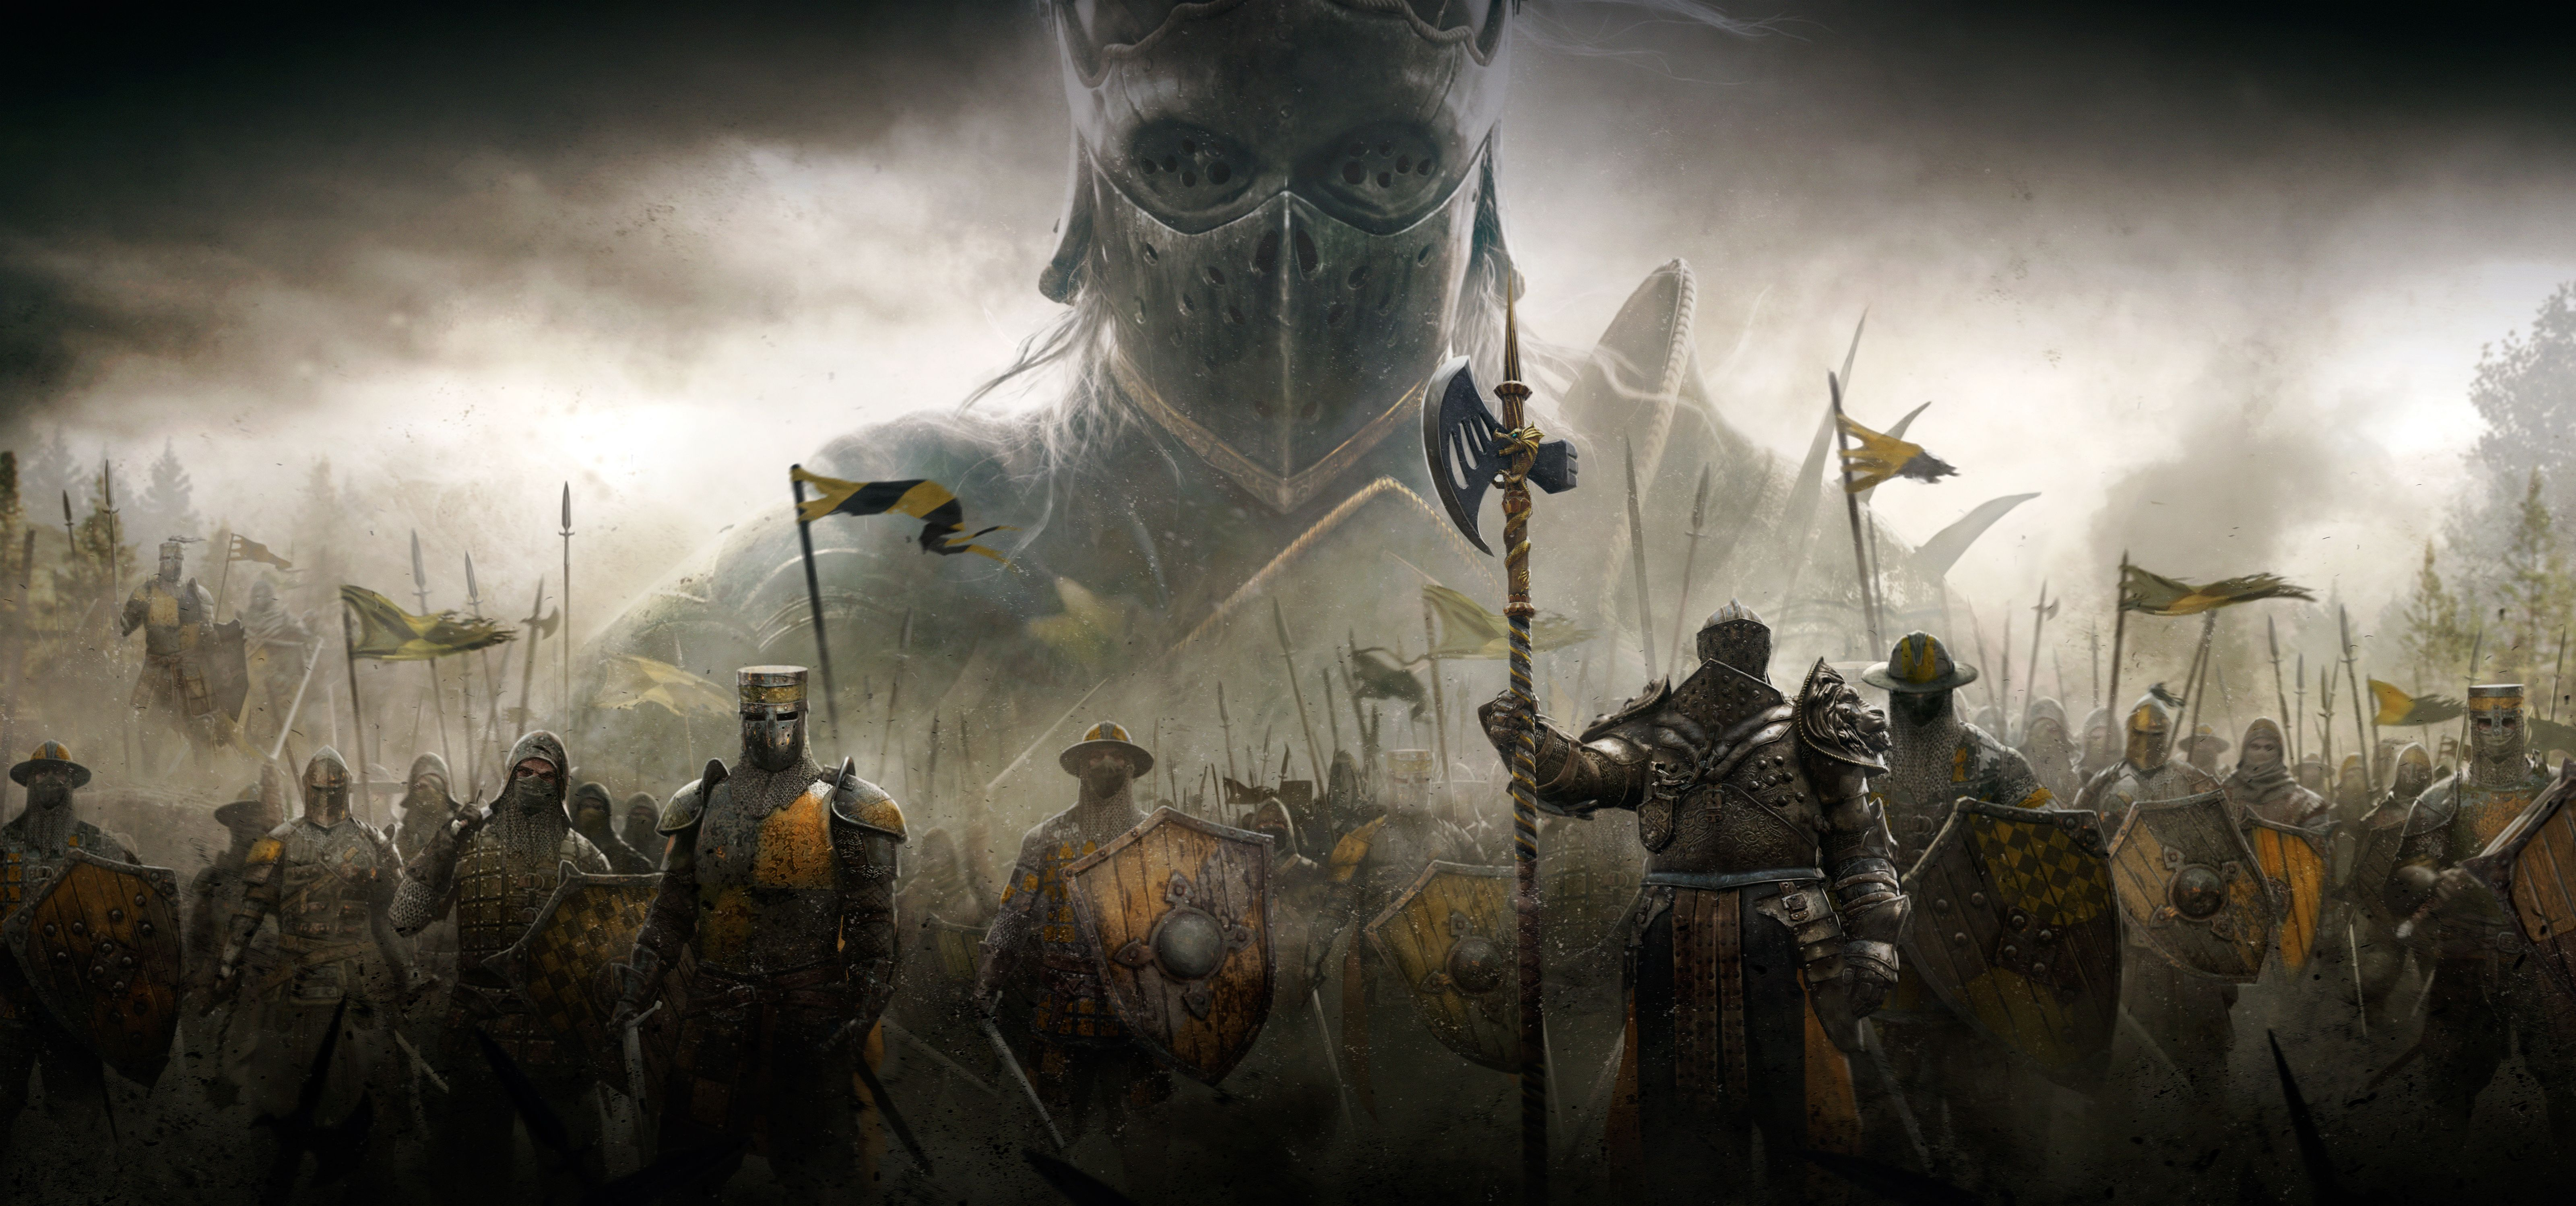 For Honor Apollyon Wallpaper High Quality Resolution Honor Mobile Wallpaper 4k Phone Wallpapers